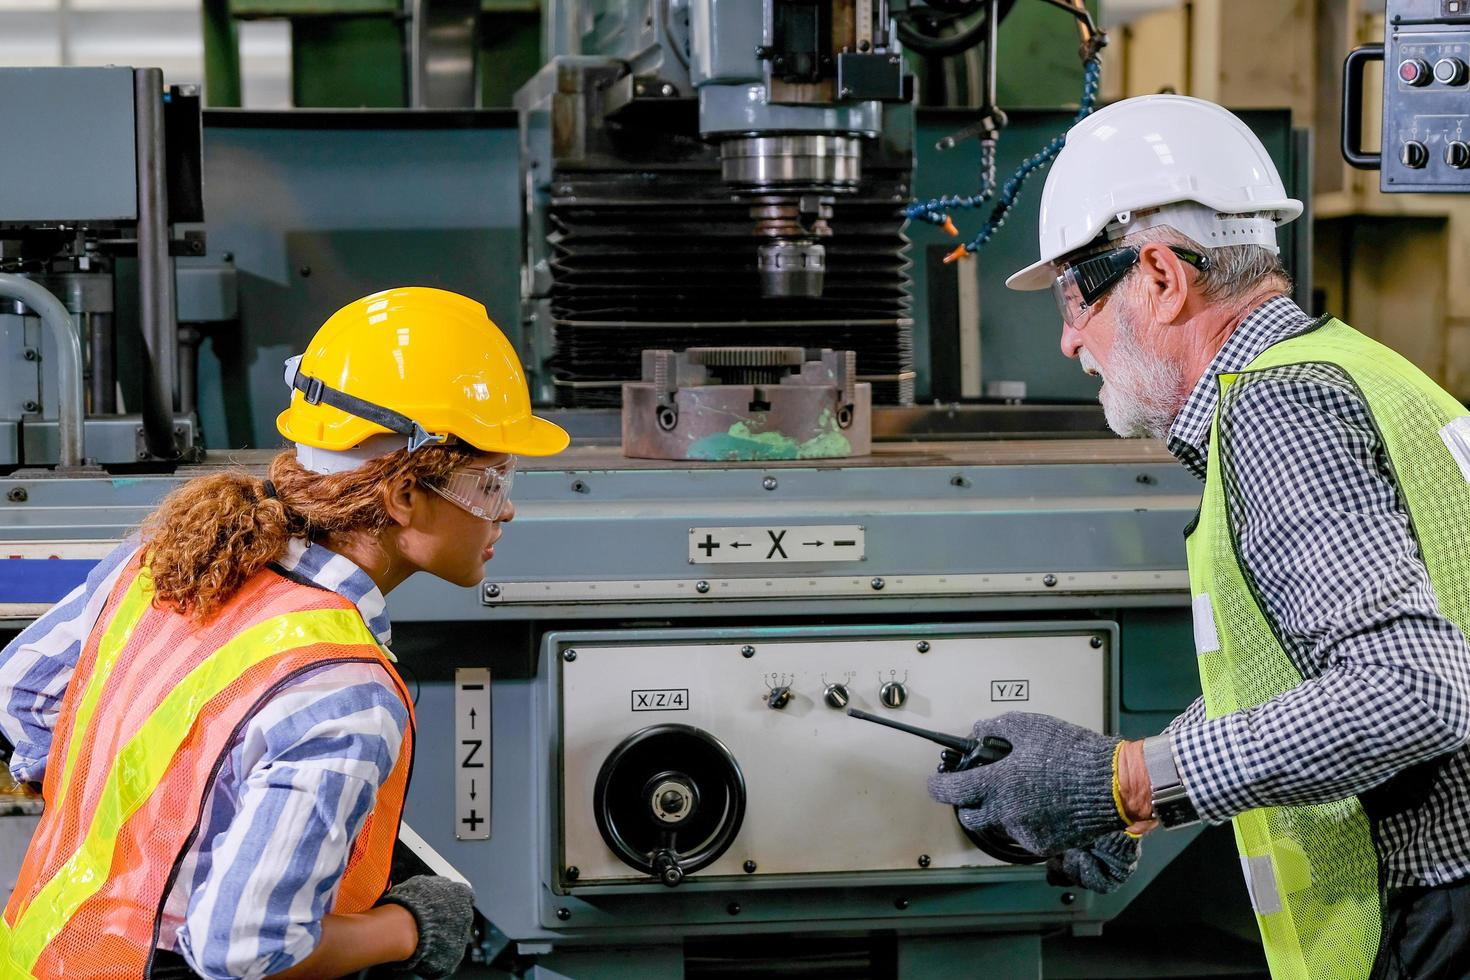 Two technicians work together to solve issue at factory photo